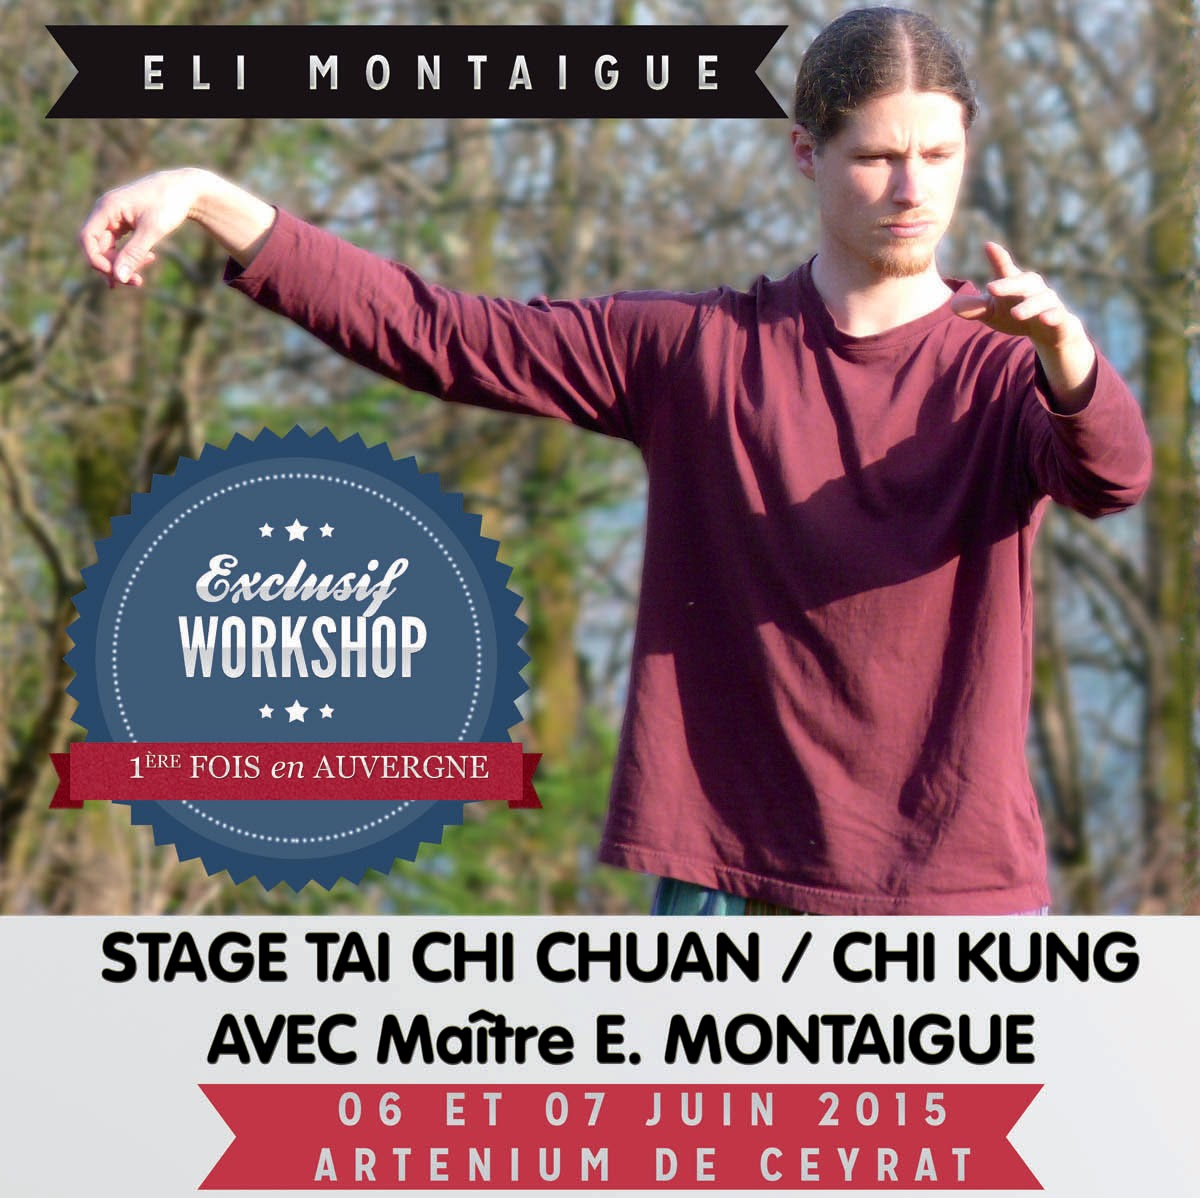 Stage Tai Chi Chuan / Chi Kung Auvergne Eli Montaigue